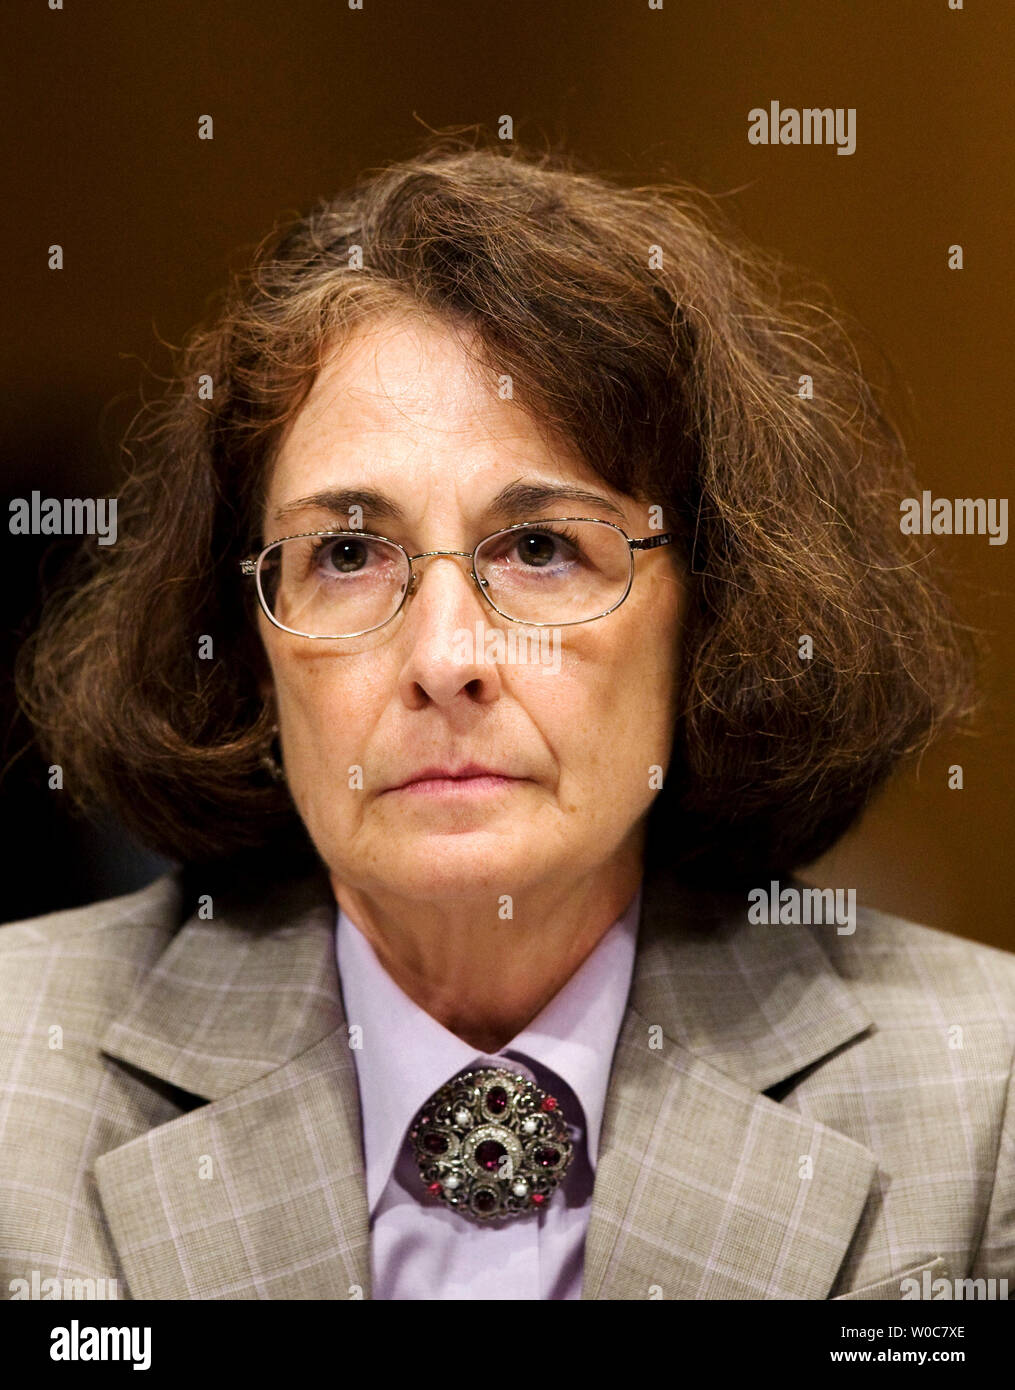 Retired Navy Rear Adm. Jane Dalton, former legal advisor to the chairman of the Joint Chiefs of Staff, testifies during a Senate Armed Services Committee hearing on the origins of aggressive interrogation techniques and treatment of detainees in U.S. Custody on Capitol Hill in Washington on June 17, 2008. (UPI Photo/Patrick D. McDermott) - Stock Image